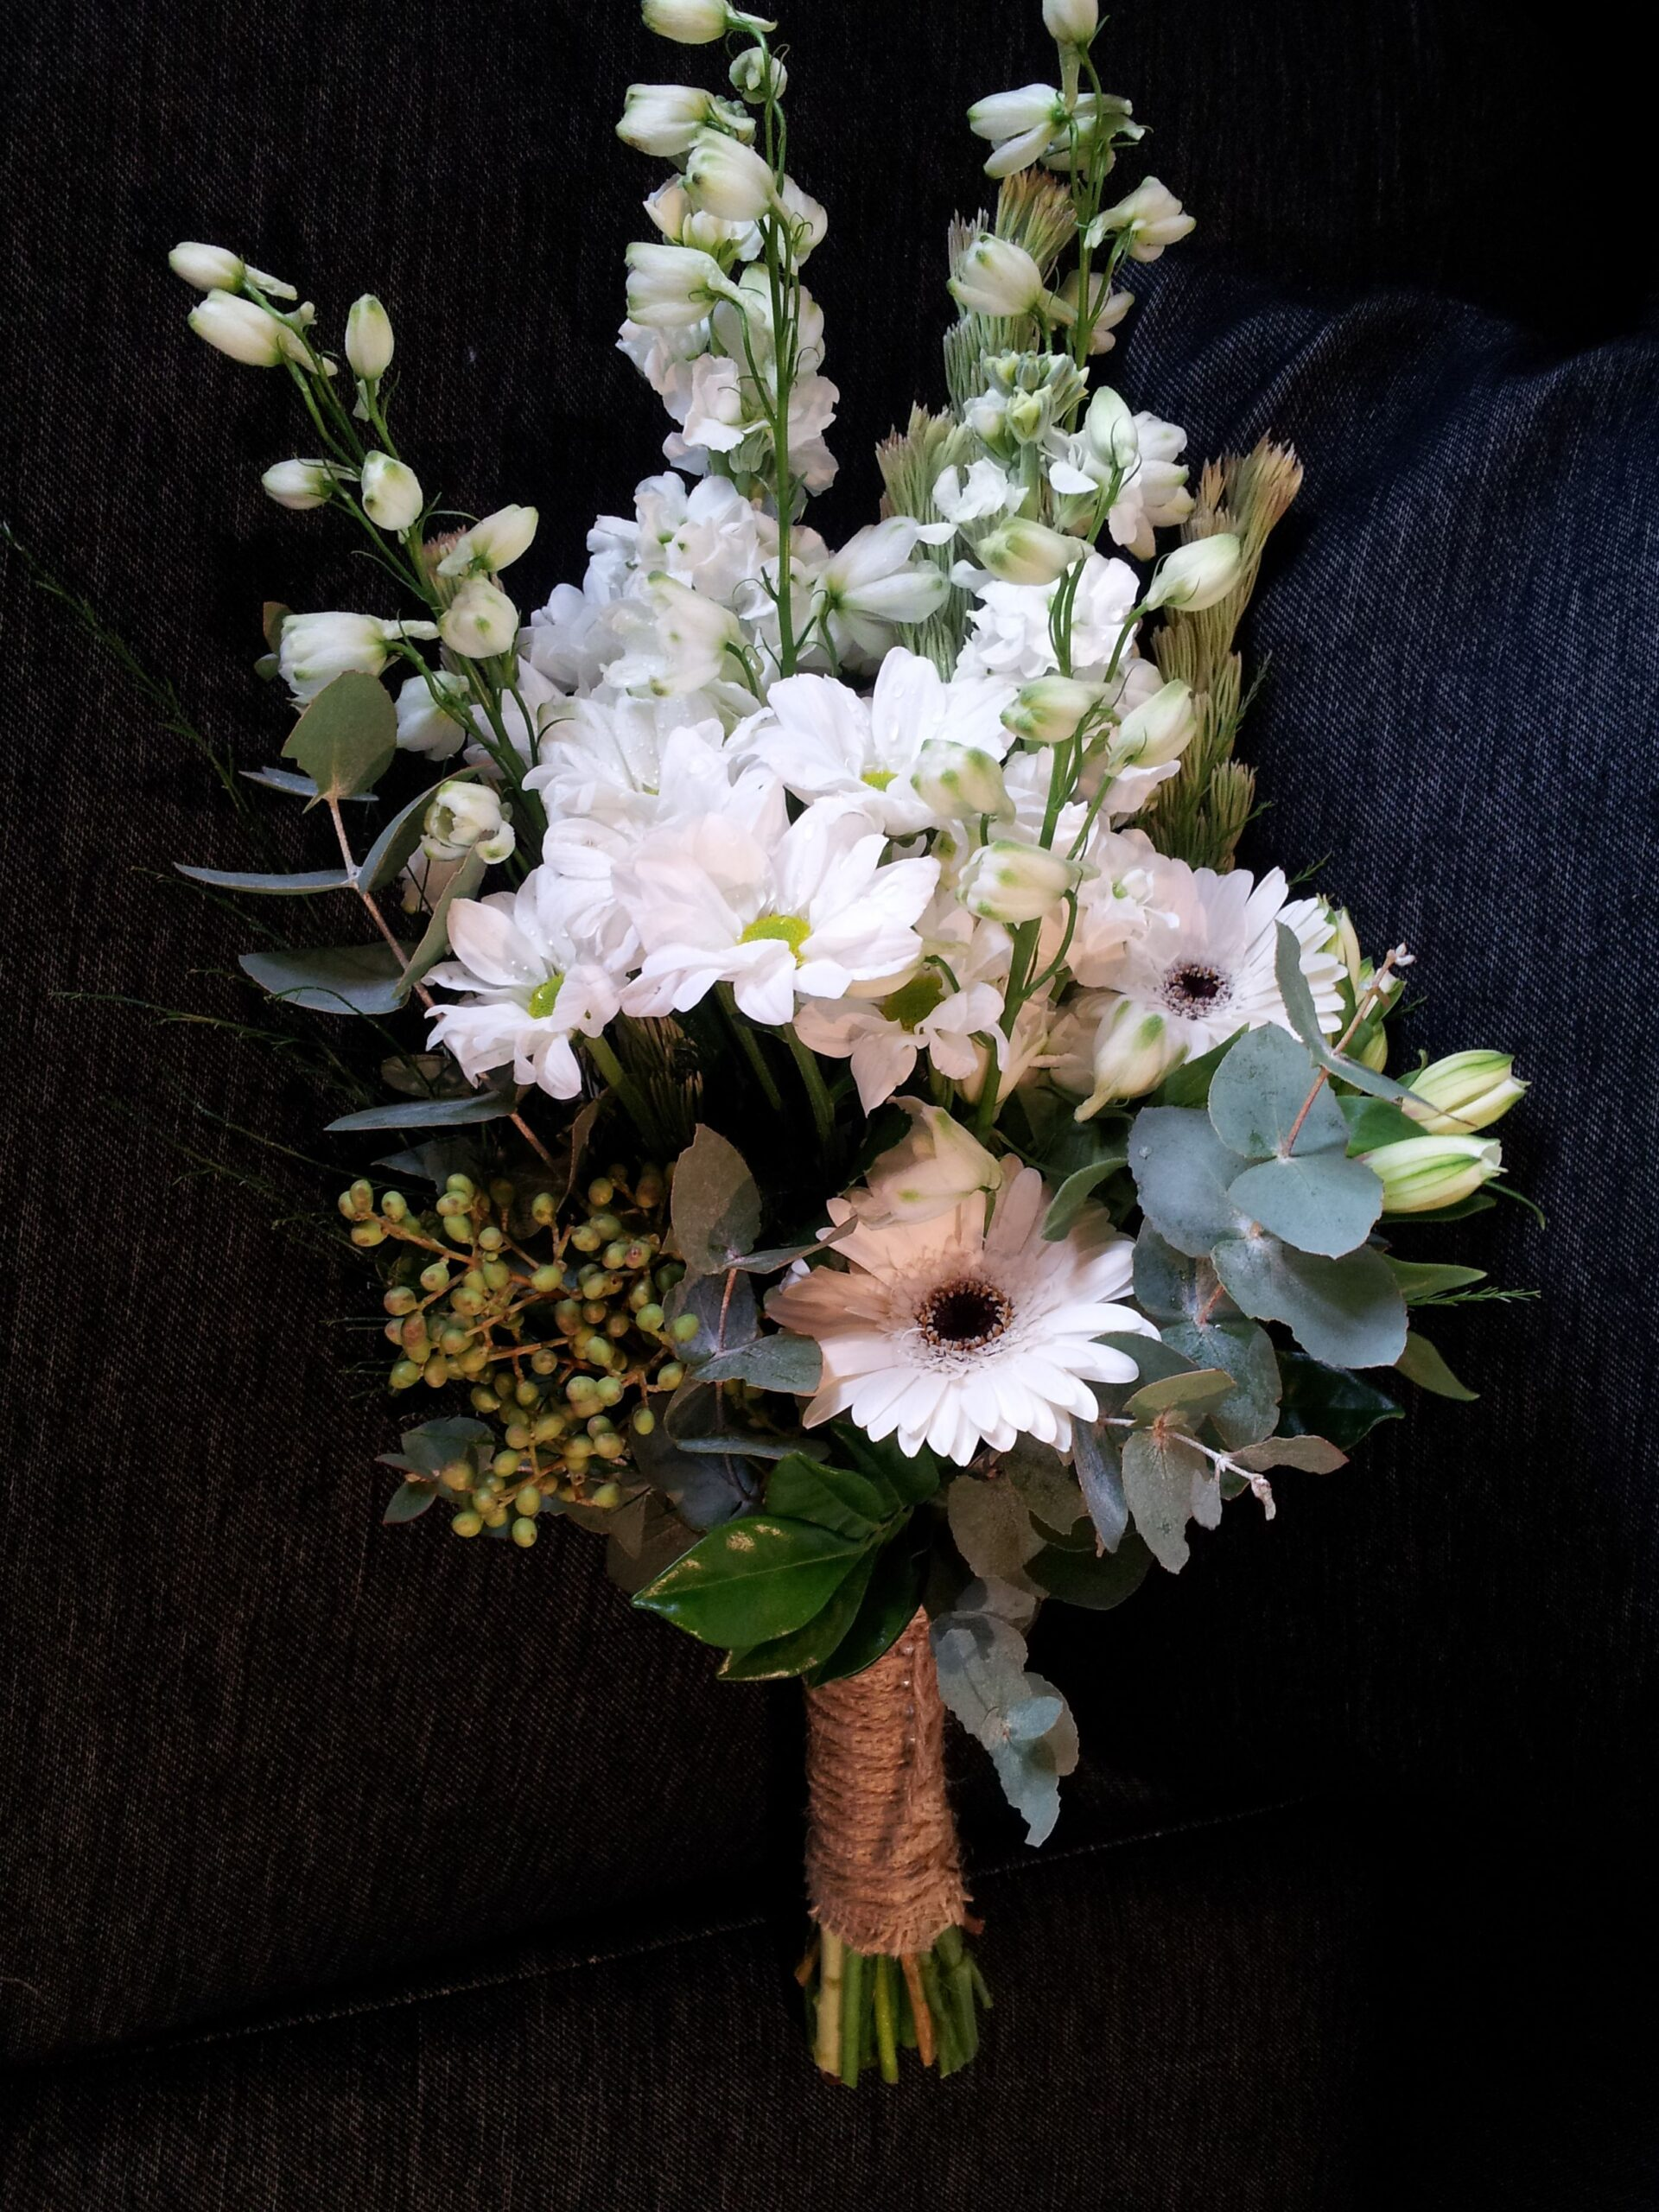 choose arm sheaf wedding bouquets for your wedding 3 scaled - Choose Arm sheaf wedding bouquets for Your Wedding